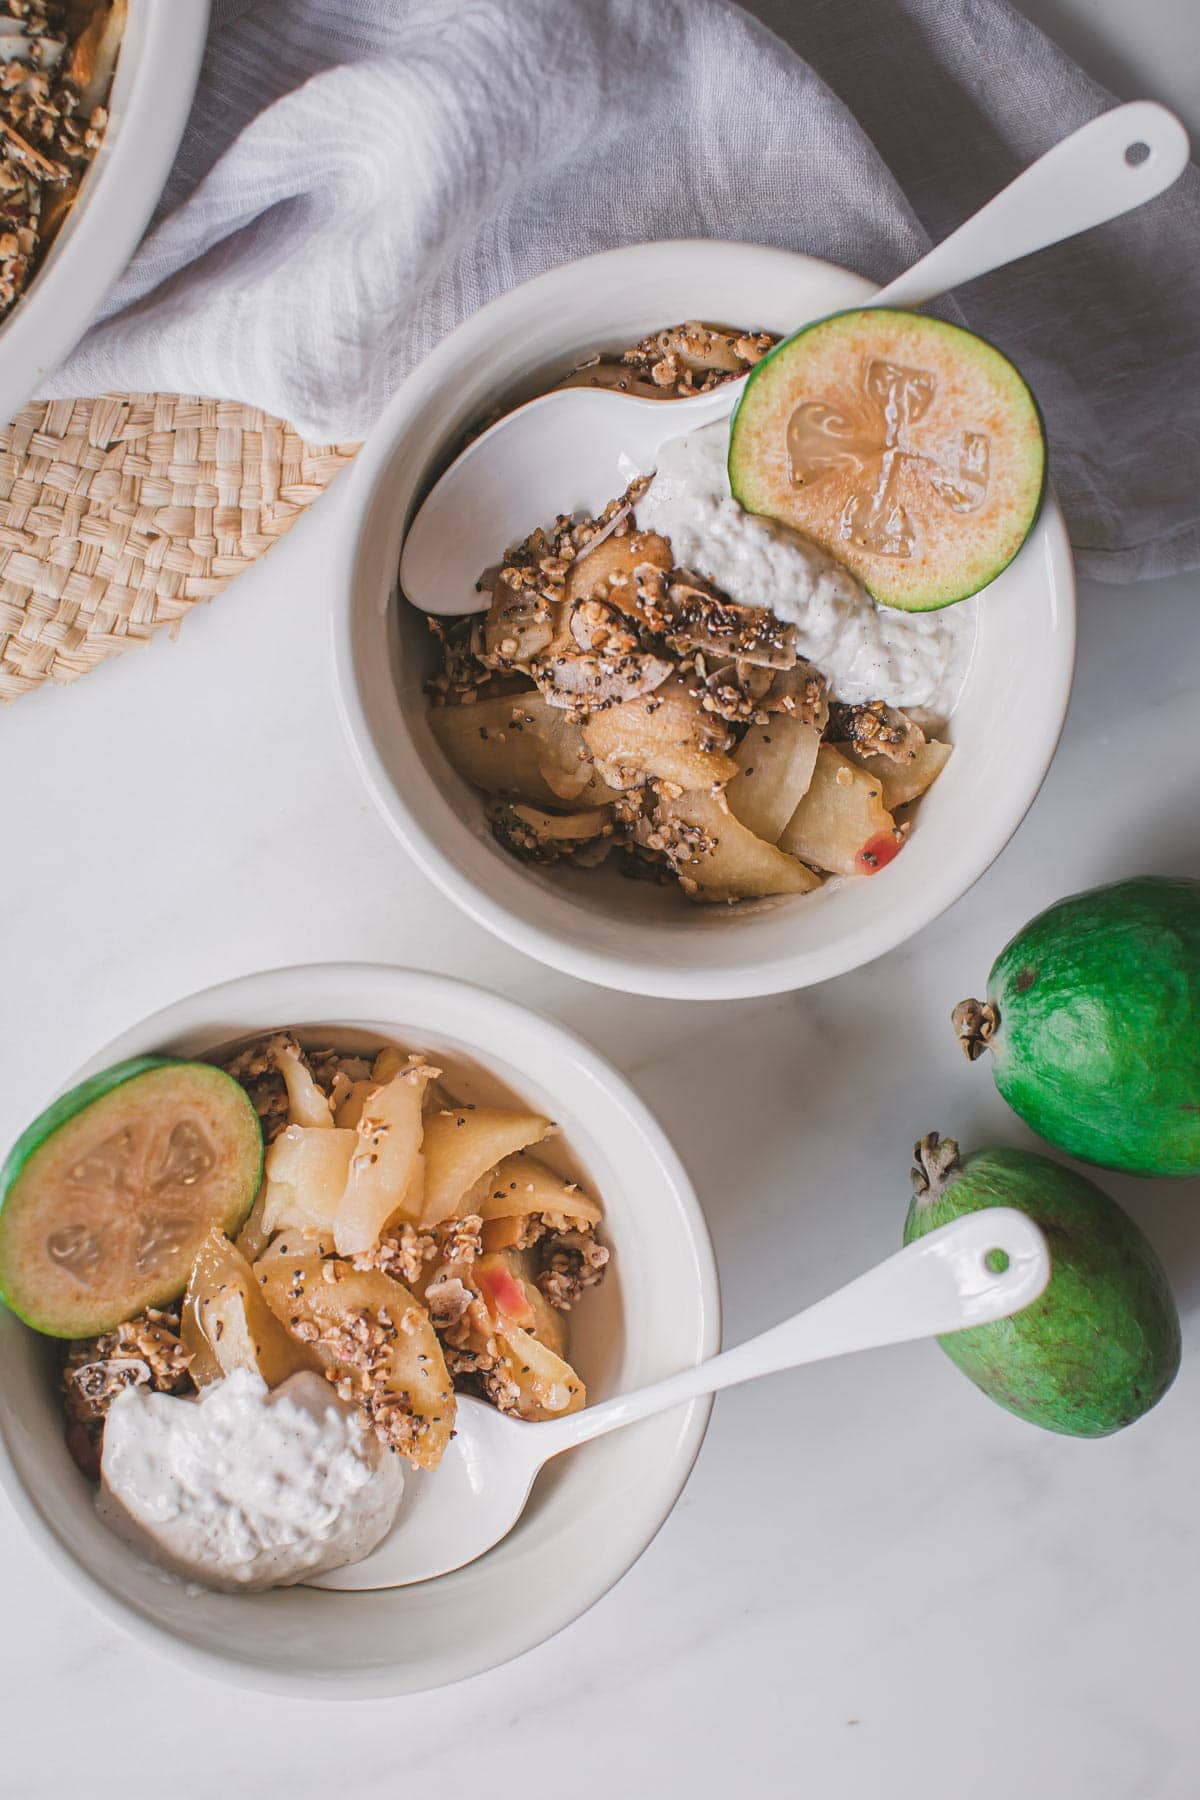 Two dessert bowls filled with feijoa crumble and a dollop of coconut yoghurt